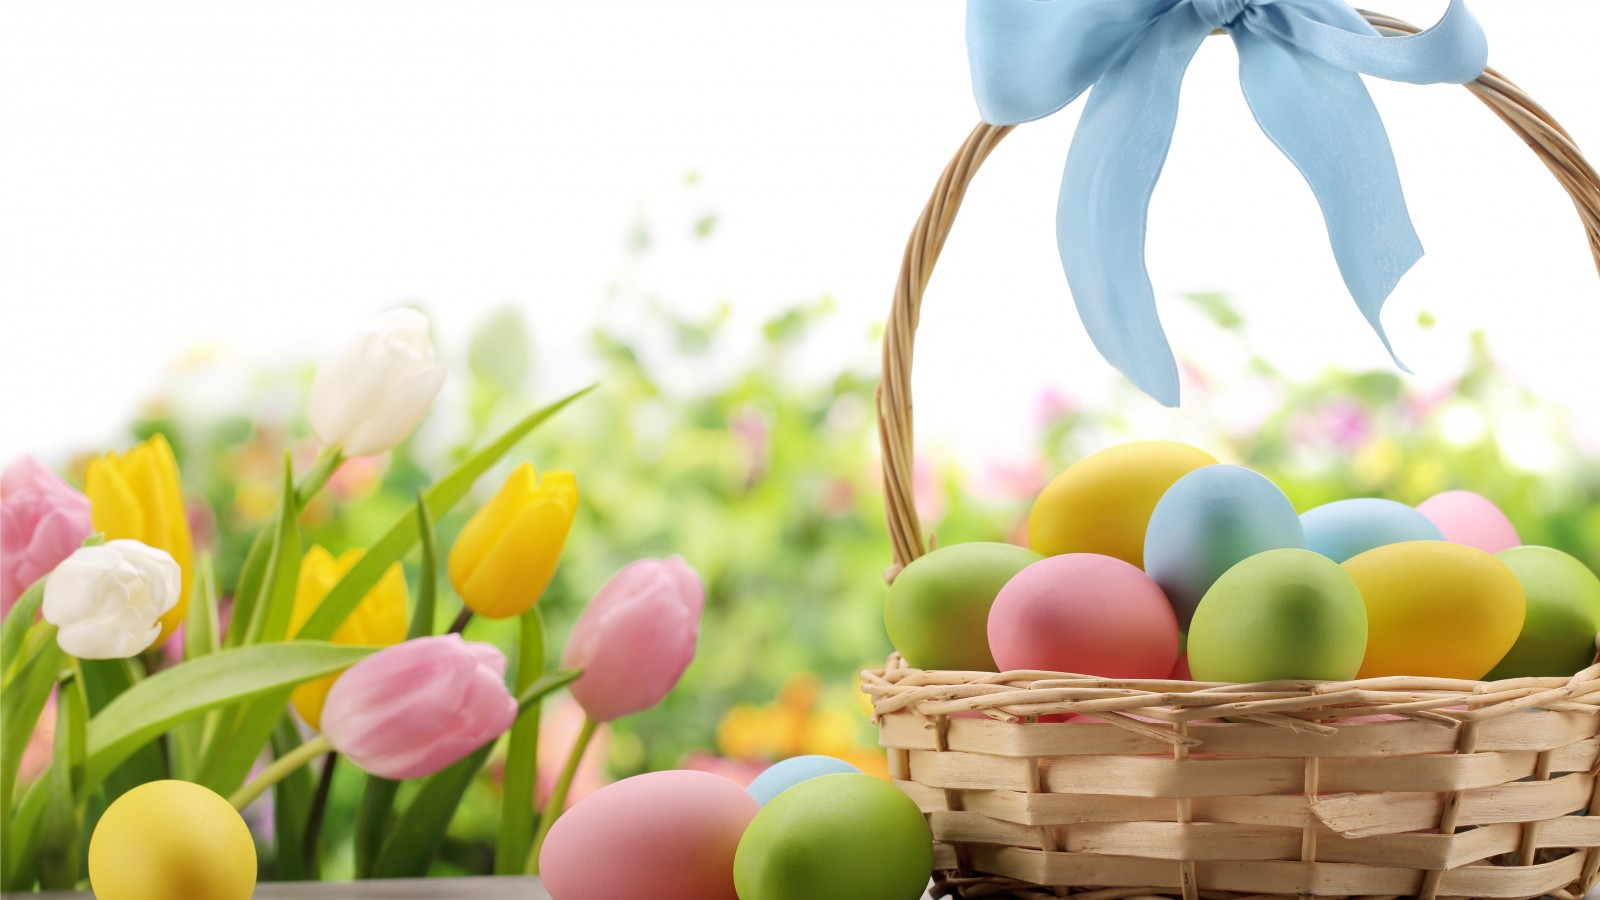 easter-eggs-spring-flowers-2930